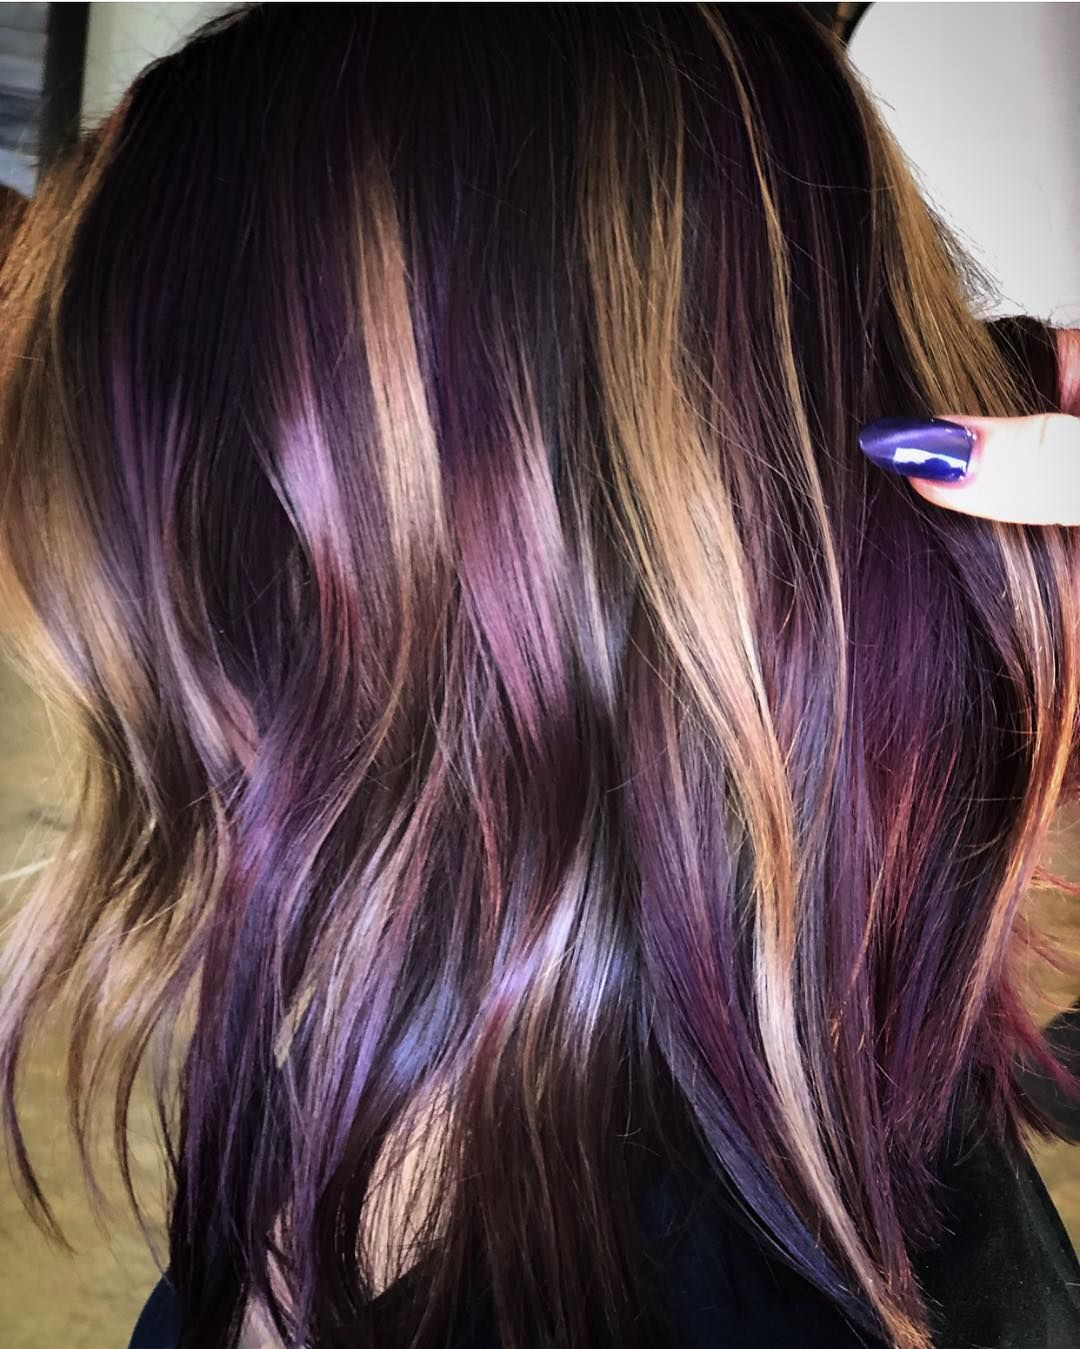 Blackberry Hair Is A Fun New Look Thats Perfect For Brunettes In